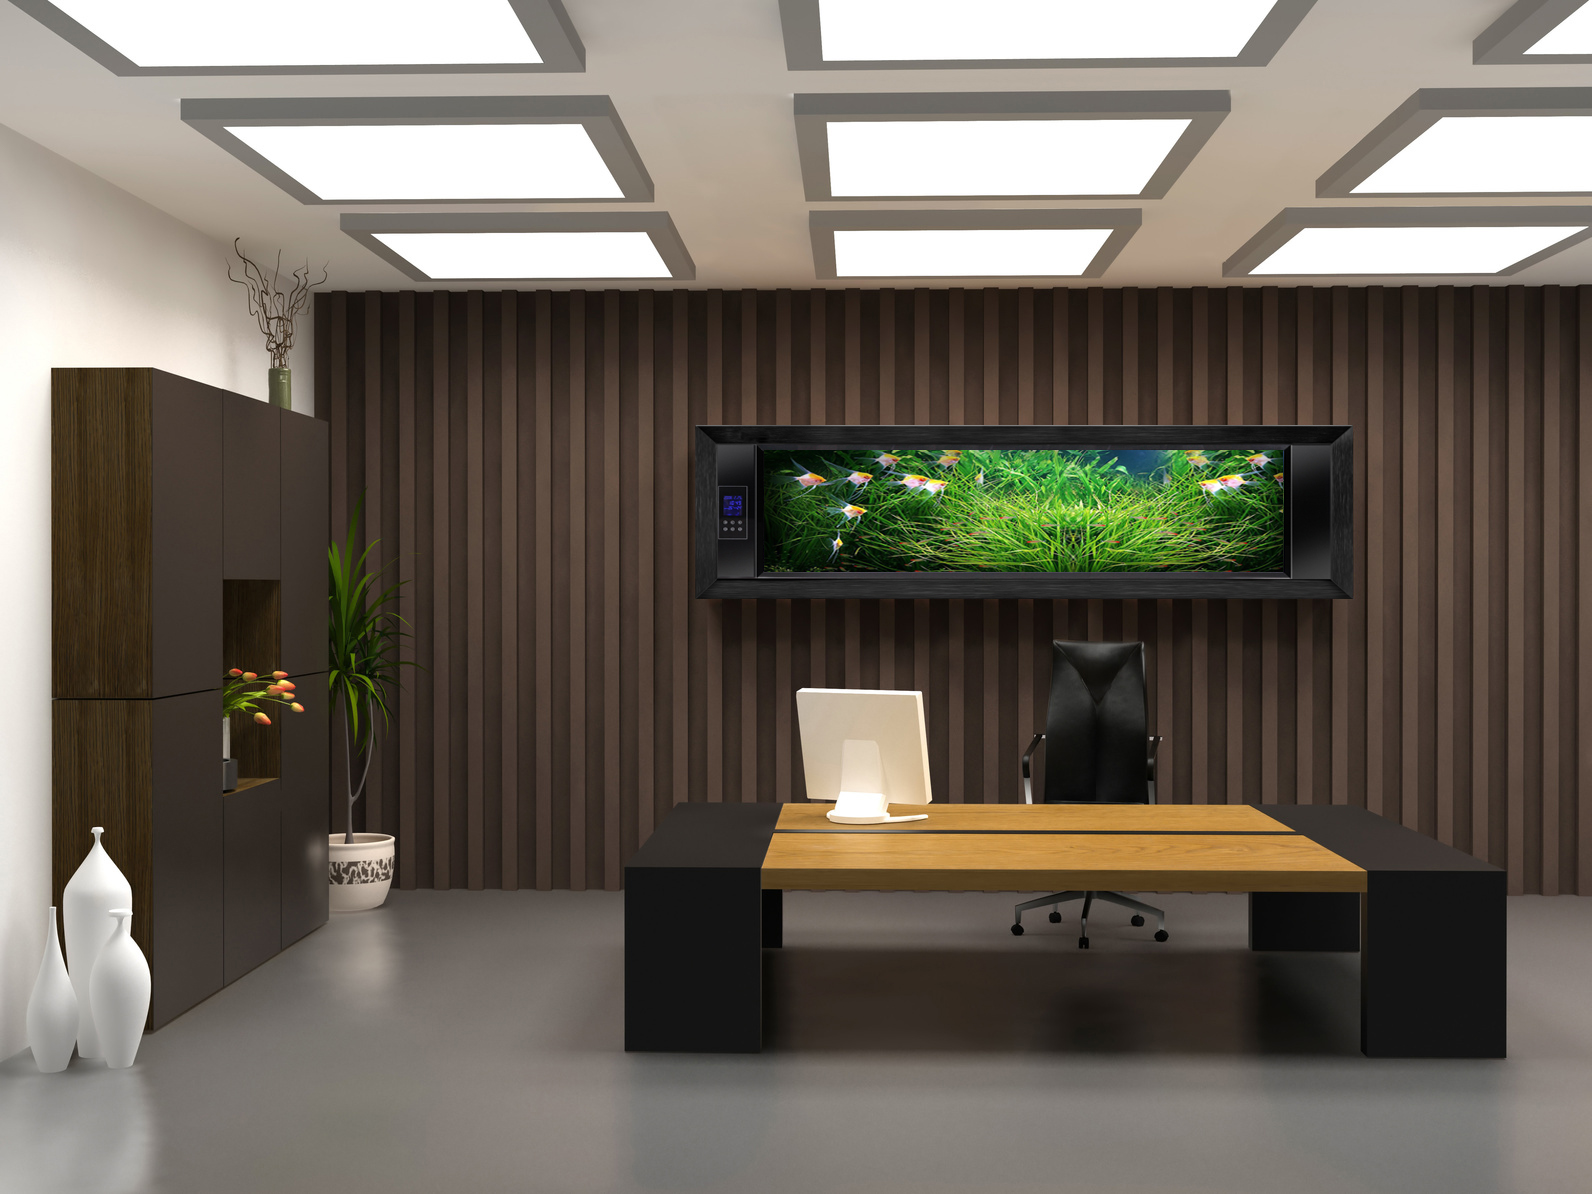 Minimalist Computer Desk For Better Productivity : Luxury And Modern Computer Furniture For Interior Design And Decorating Of Office At Home Apartment